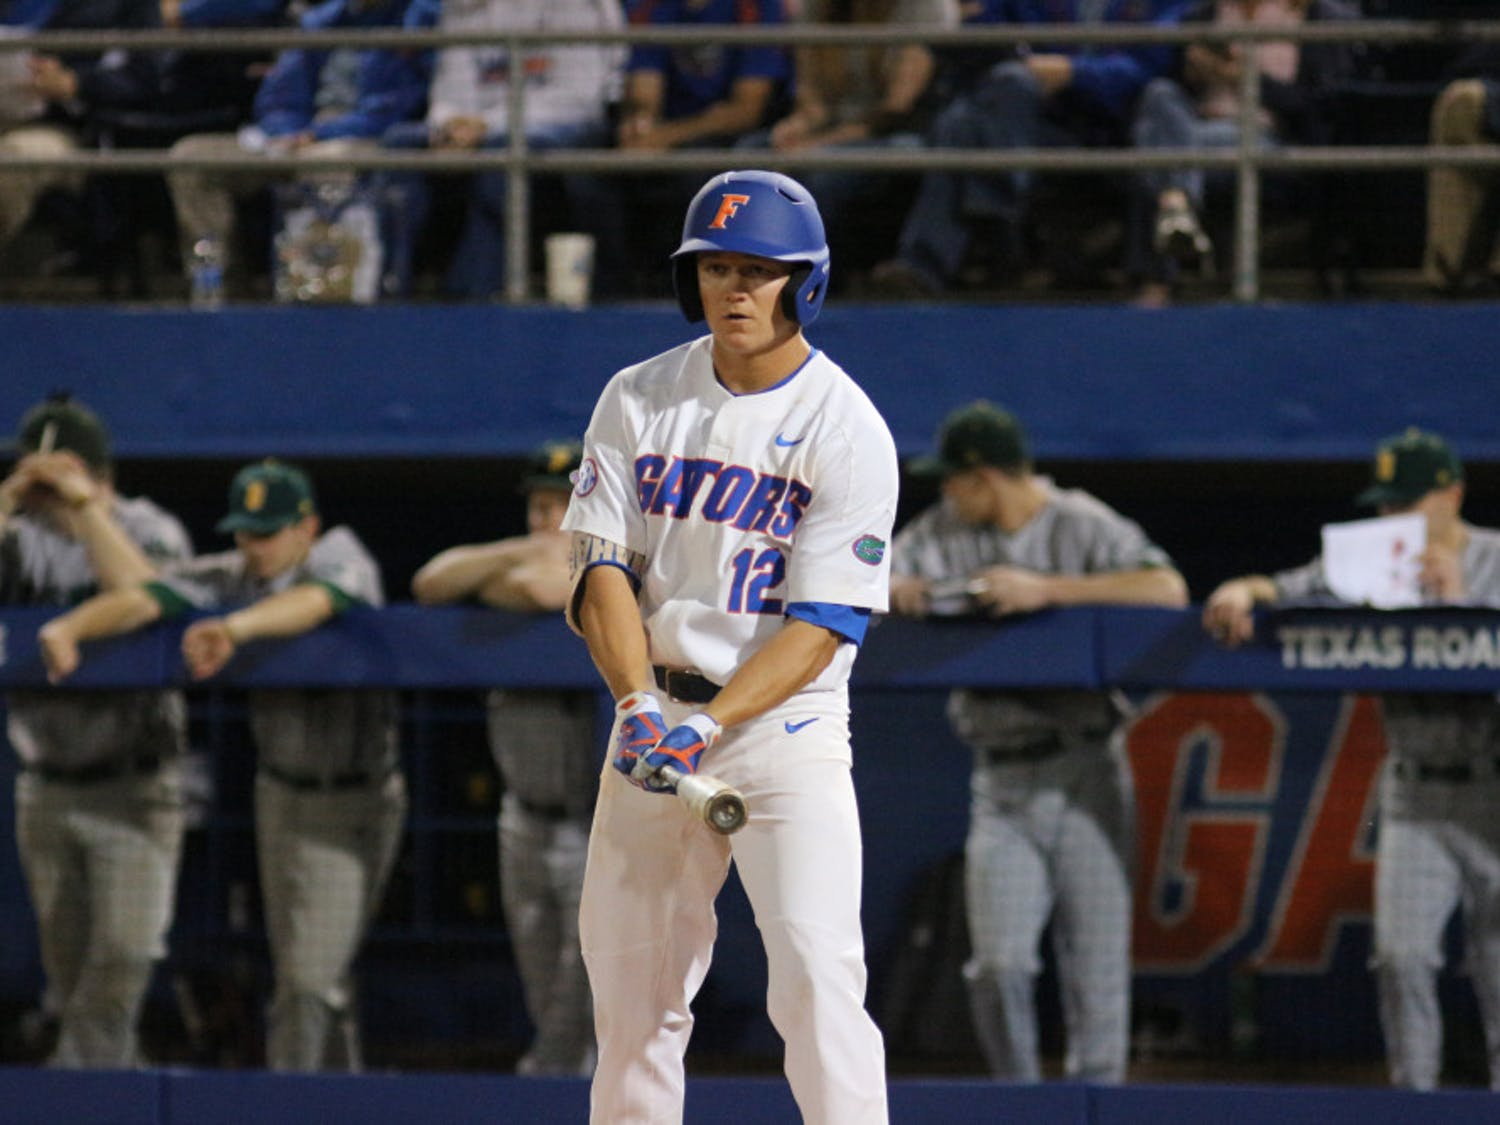 Second baseman Blake Reese powered a grand slam to right field in UF's 9-3 home win over the Georgia Bulldogs on Saturday.